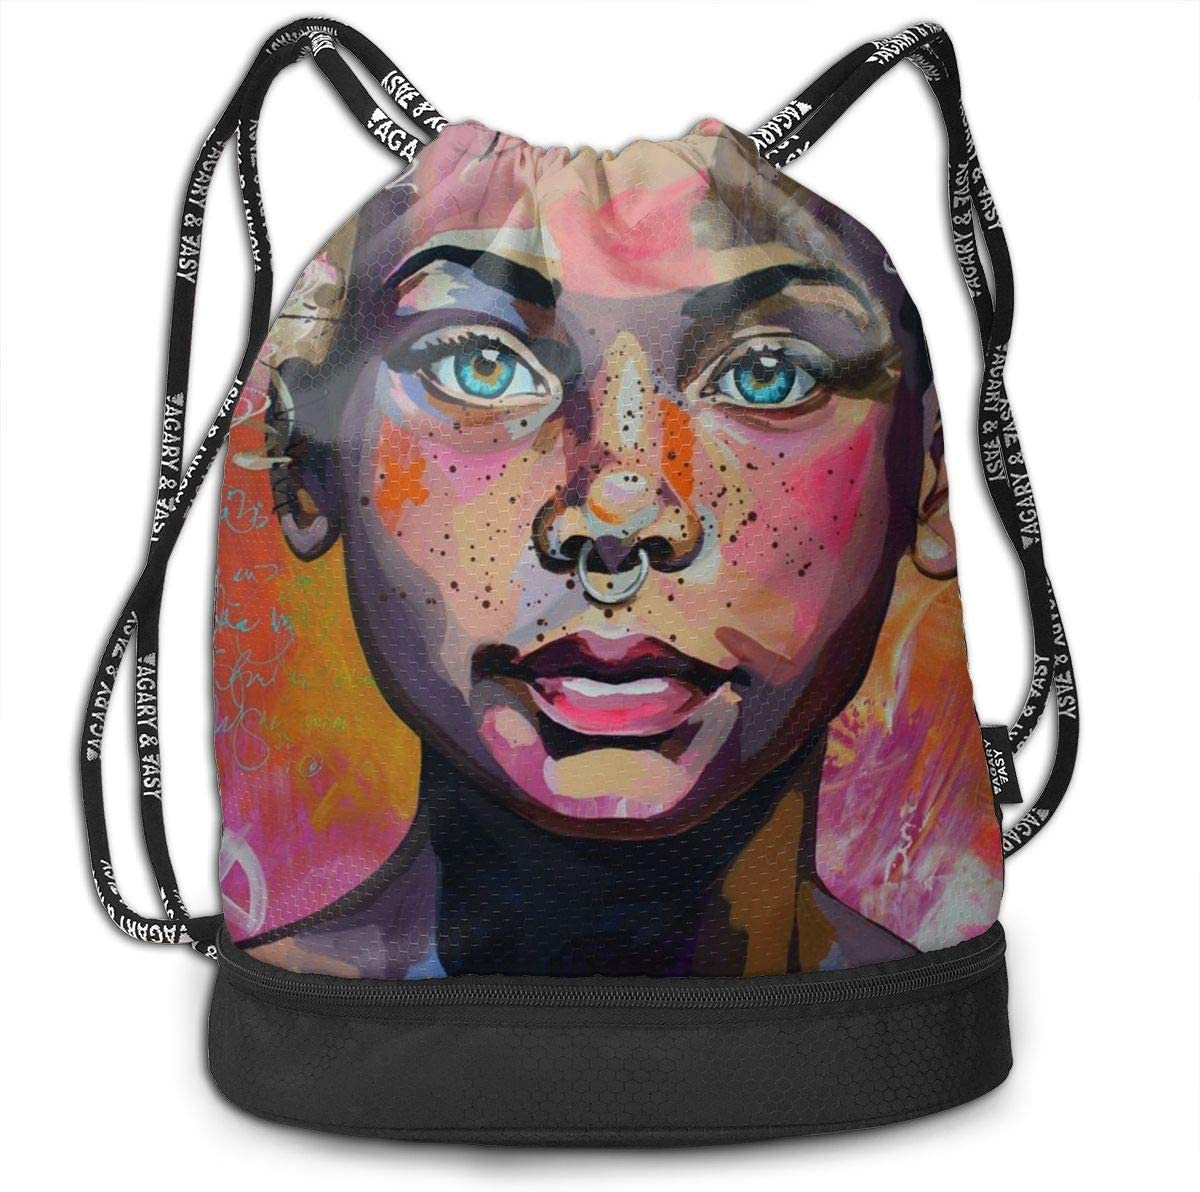 Drawstring Backpack Lovely Black Women Bags Knapsack For Hiking